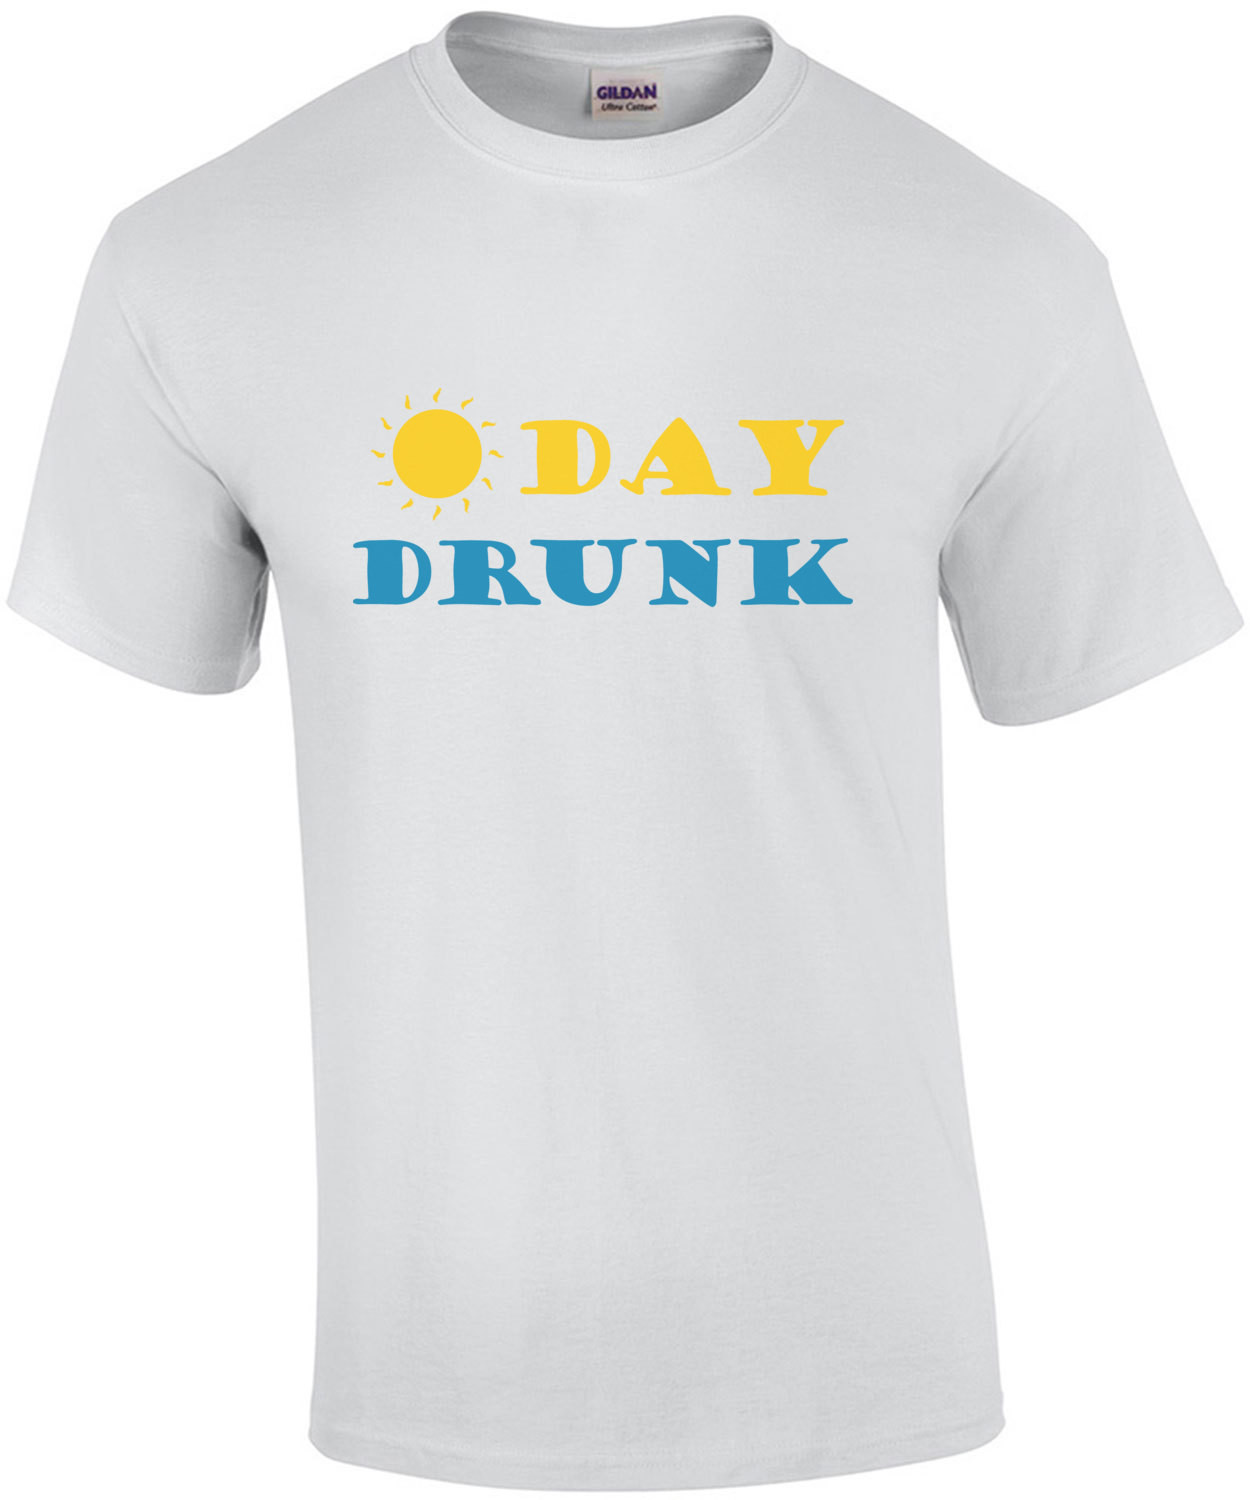 Day Drunk - Funny Drinking T-Shirt